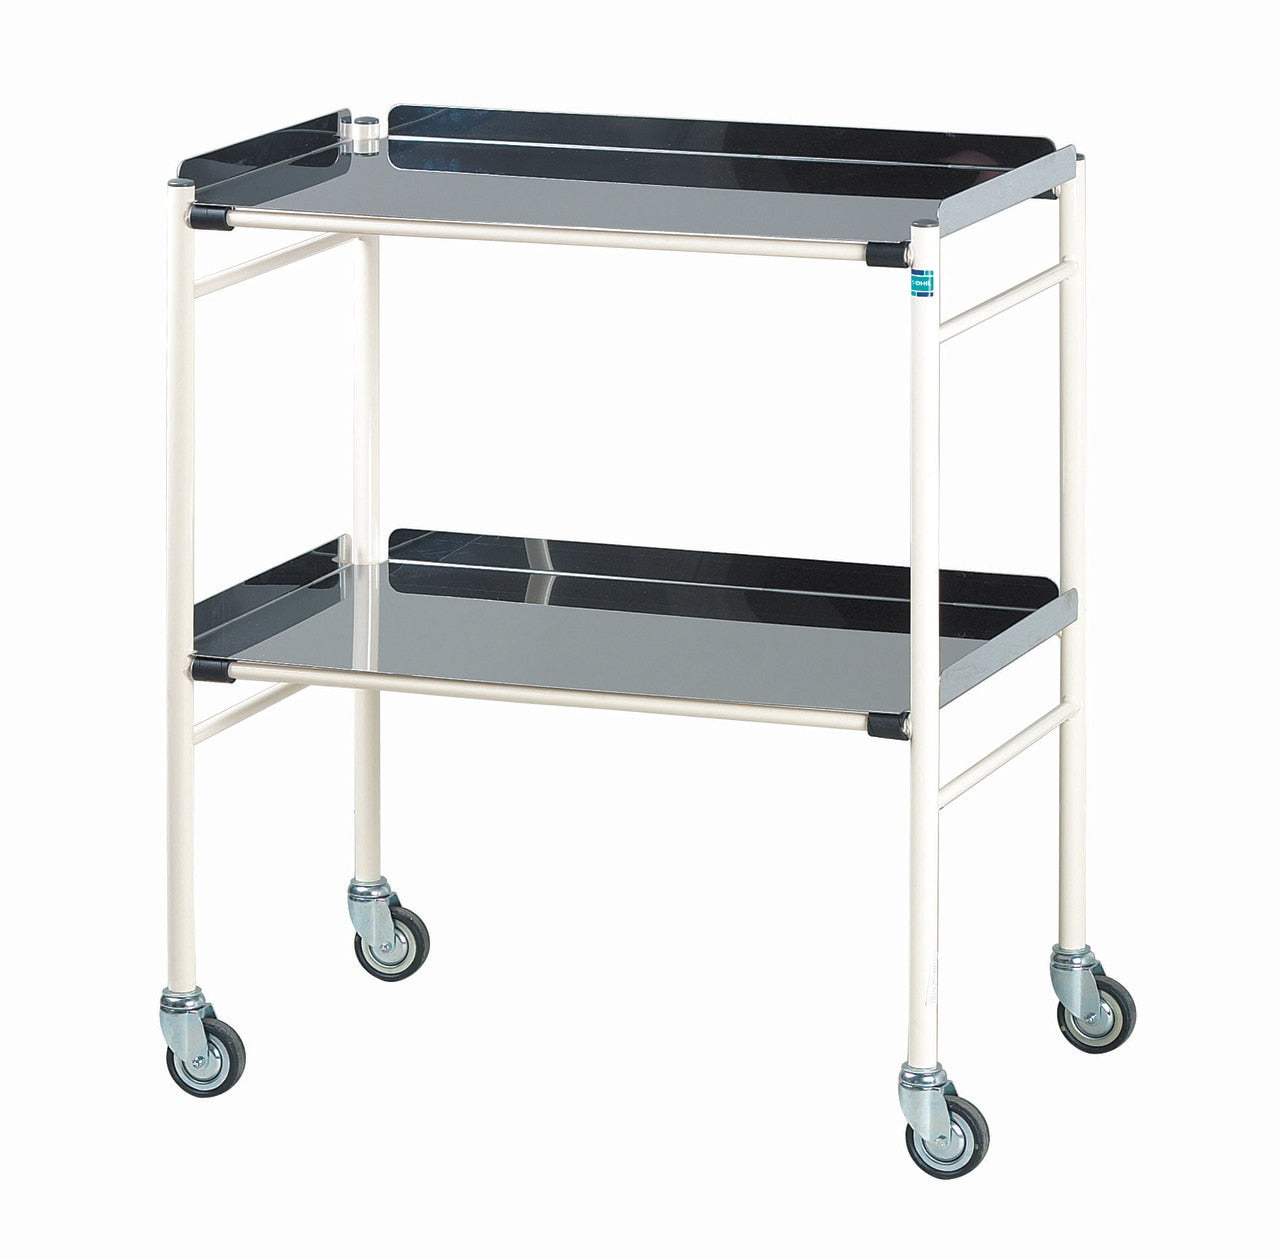 Doherty Harrogate Surgical Trolley